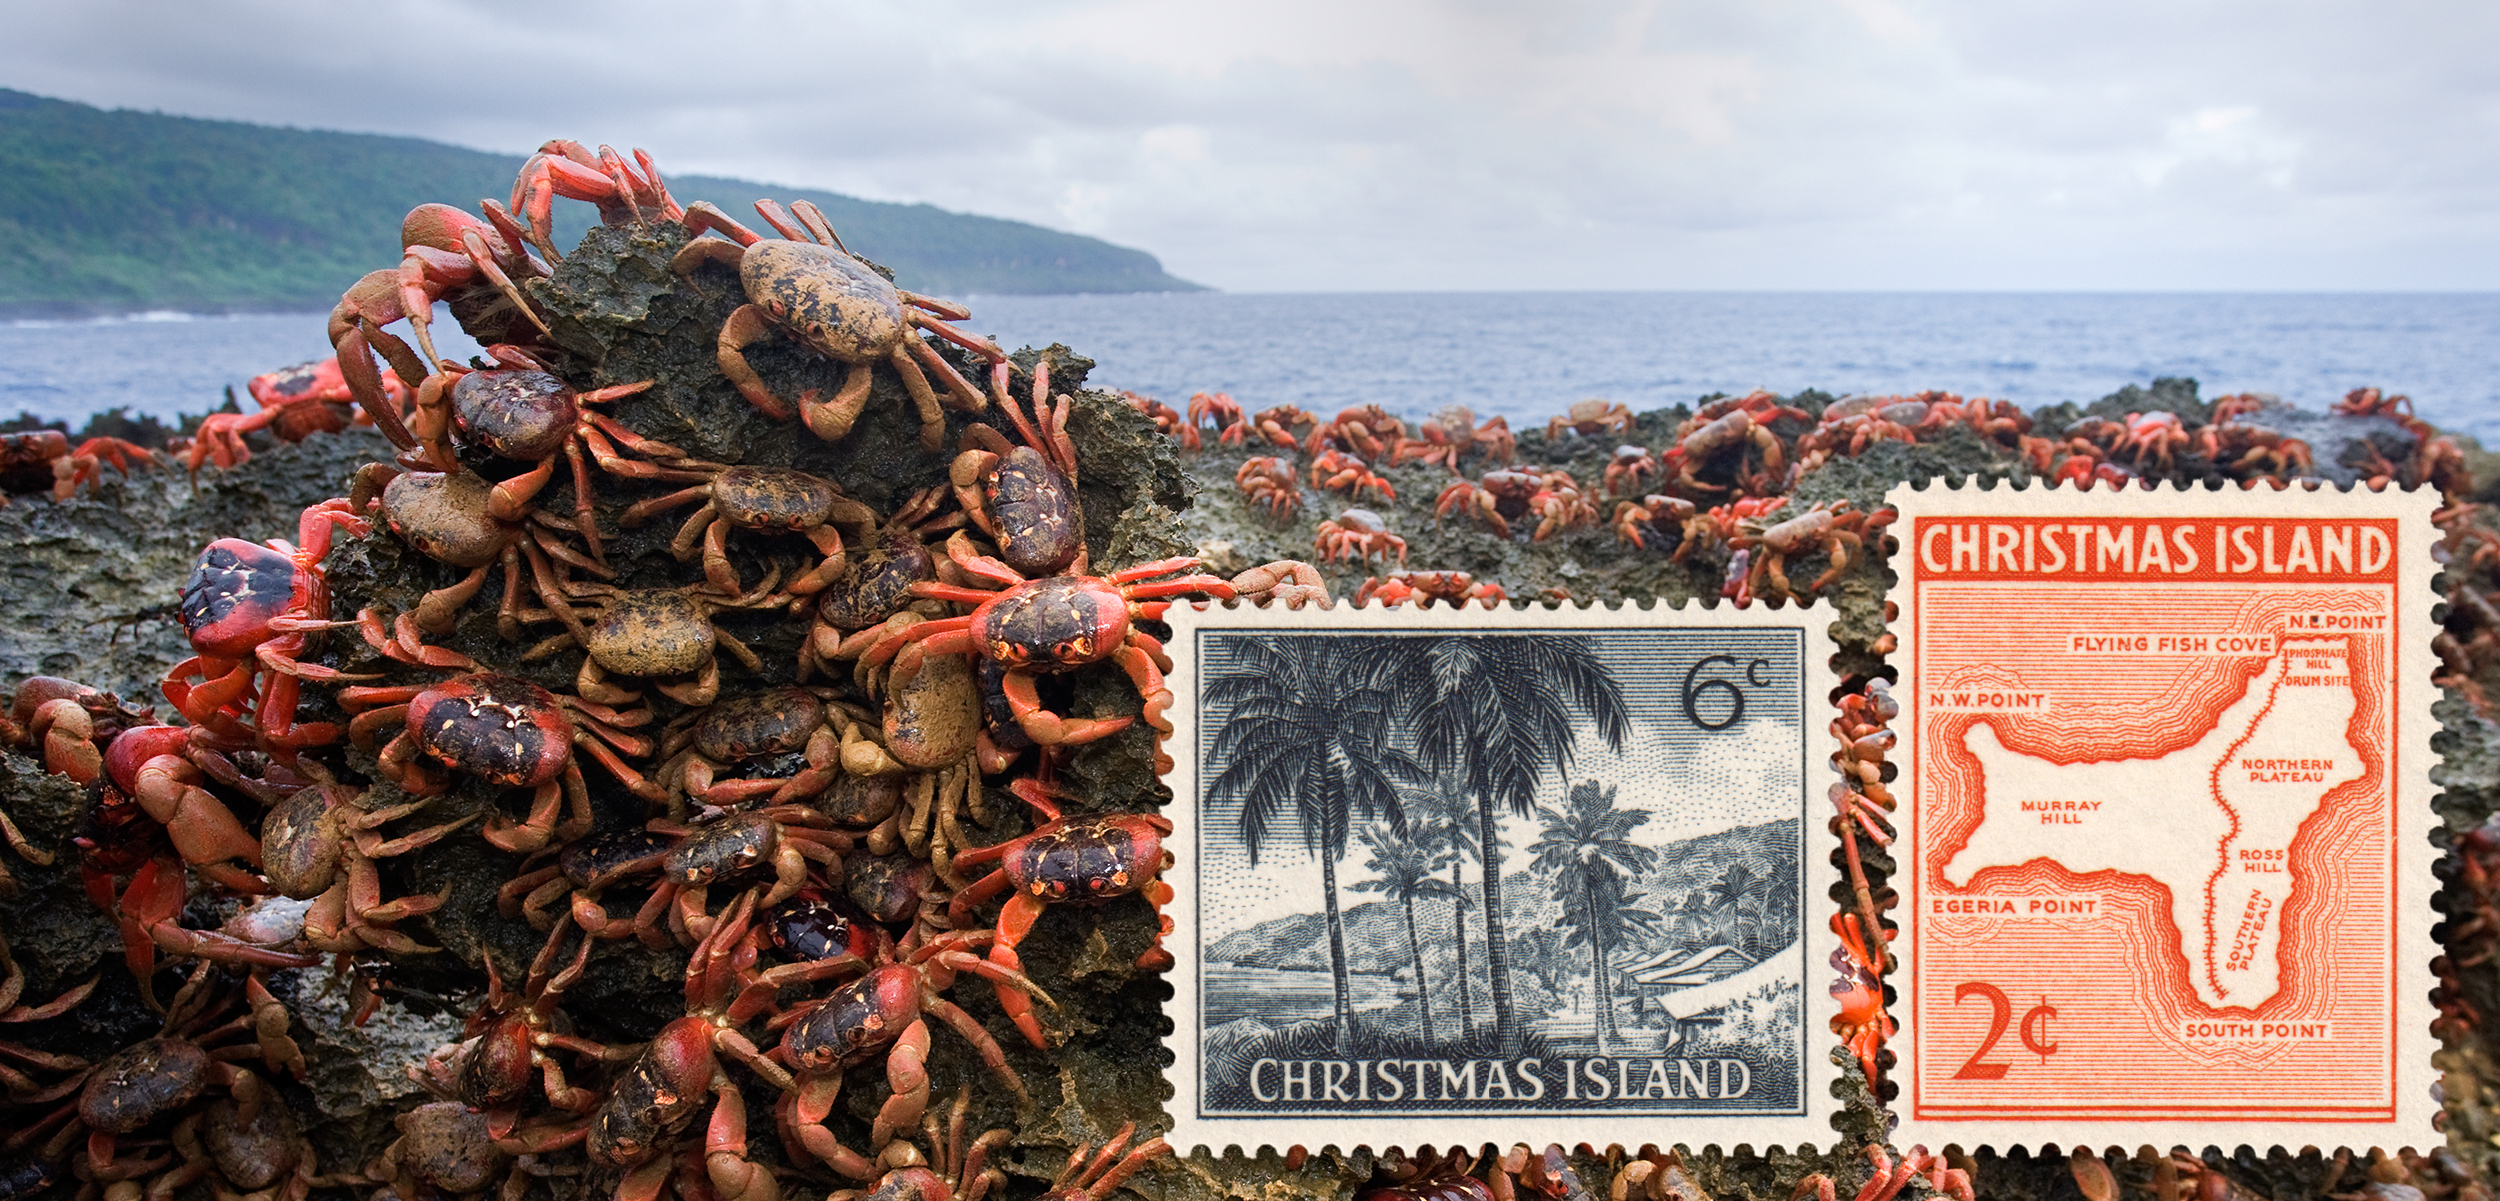 The biodiversity, unique culture, and colorful history of Australia's Christmas Island is reflected in postage stamps. Background photo by Stephen Belcher/Minden Pictures/Corbis